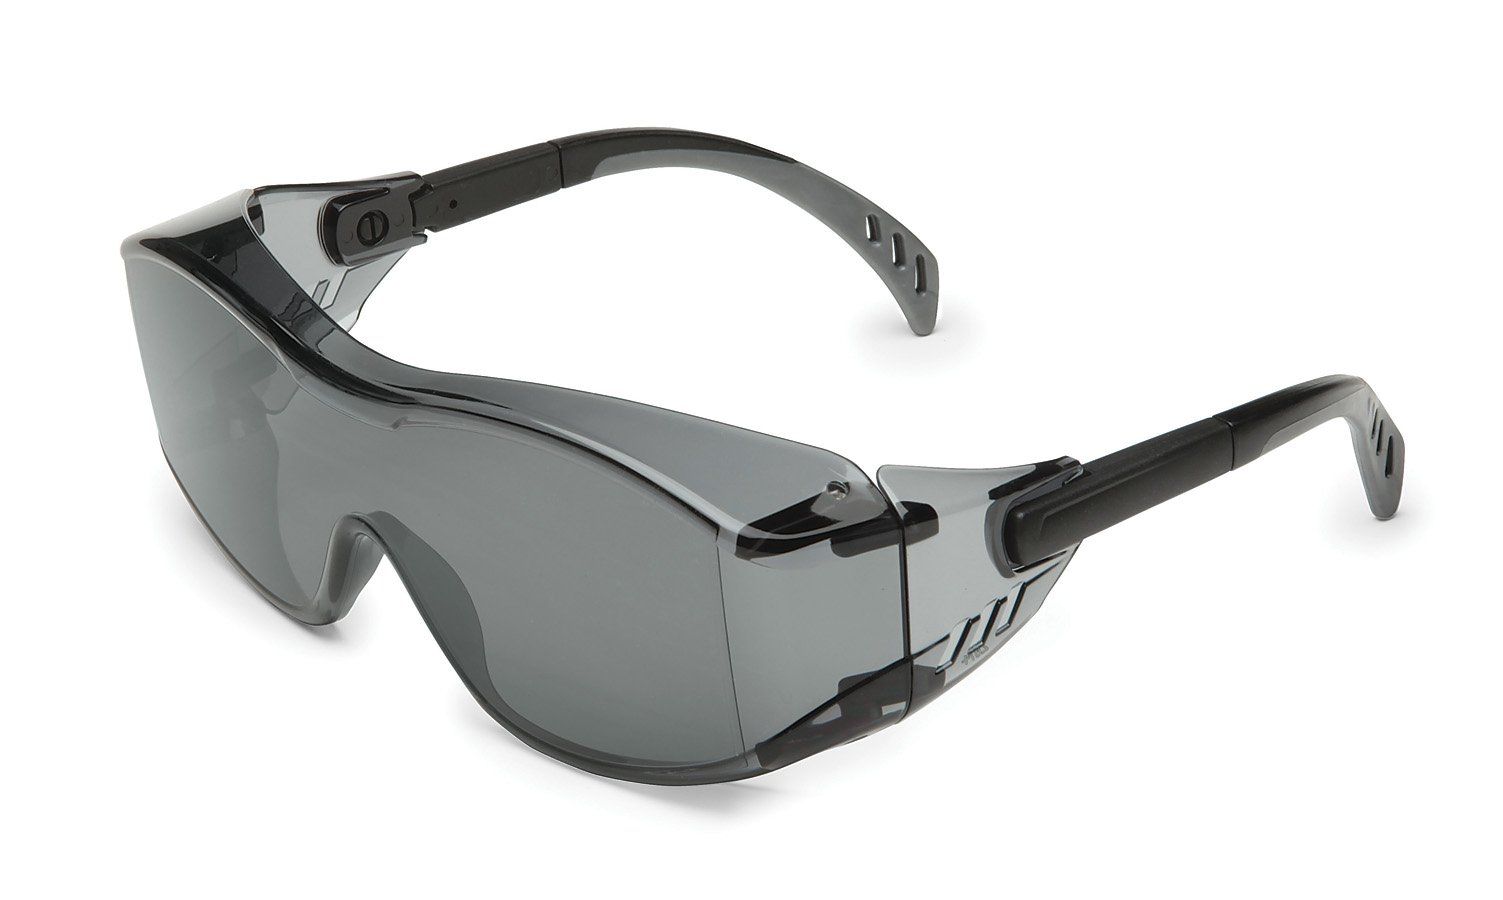 d20d0743969 Gateway Safety 6983 Cover2 Safety Glasses Protective Eye Wear -  Over-The-Glass (